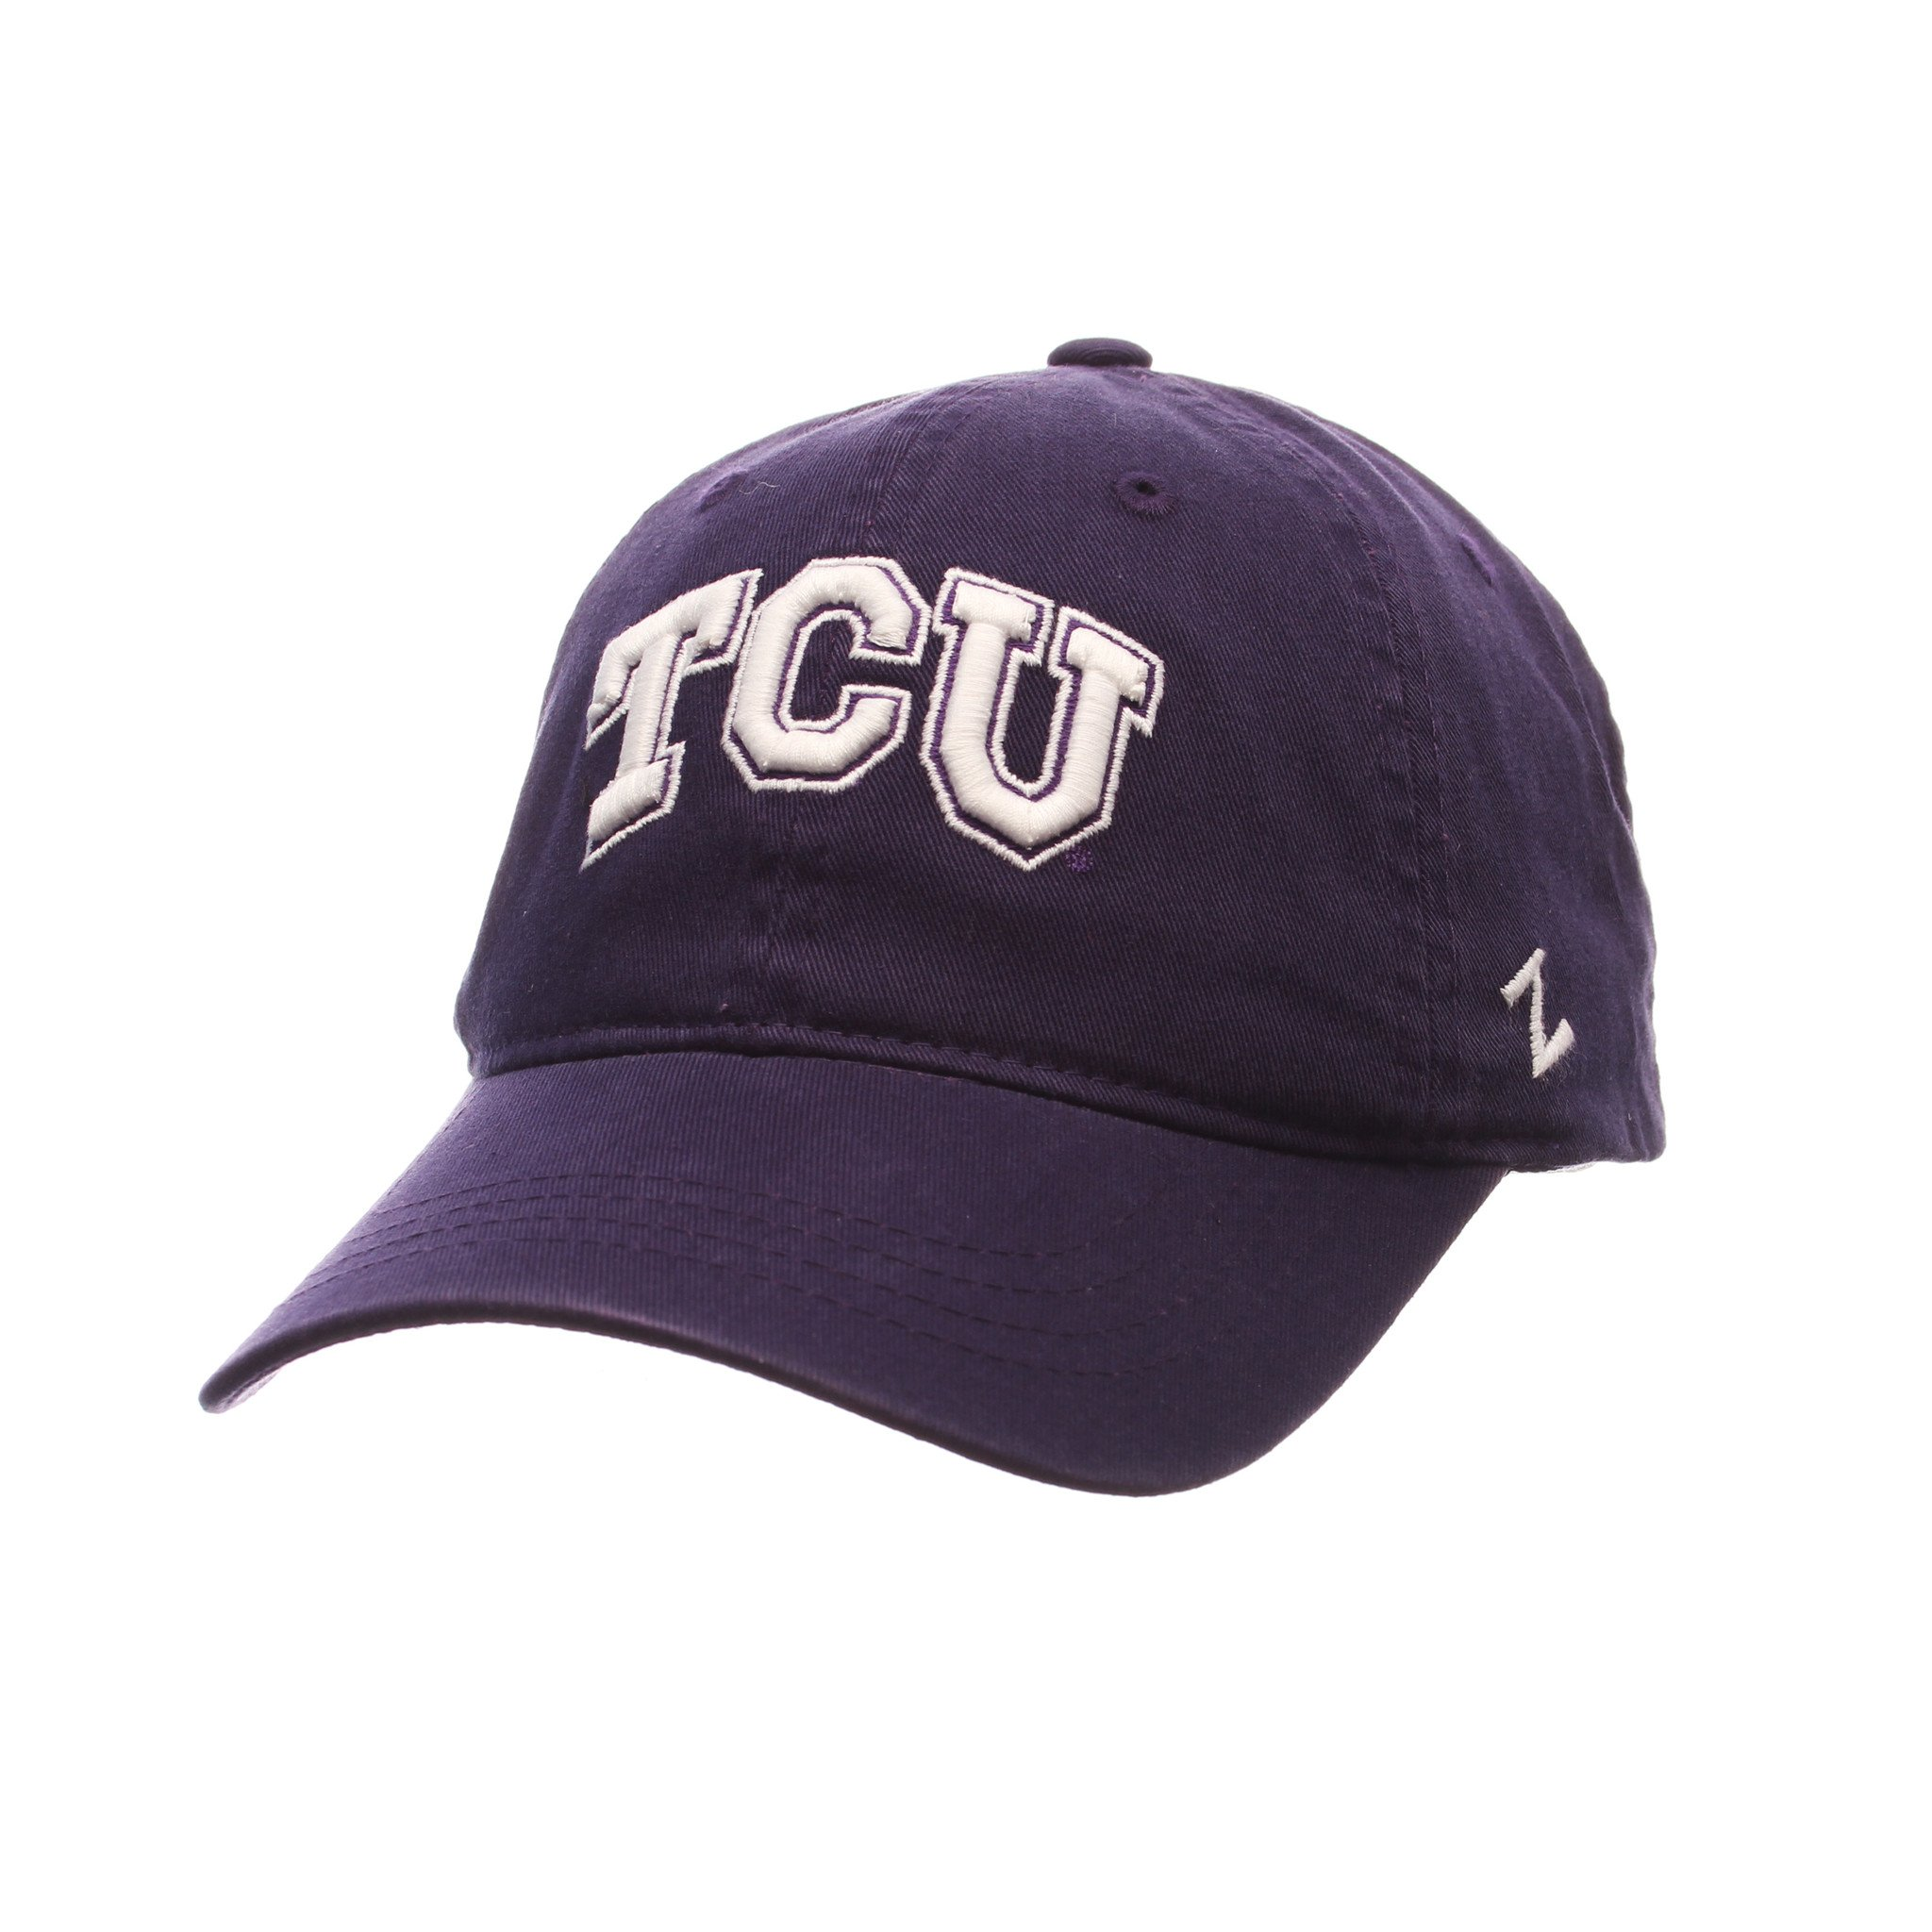 Tcu Horned Frogs Official NCAA Scholarship Adjustable Hat Cap by Zephyr 415283